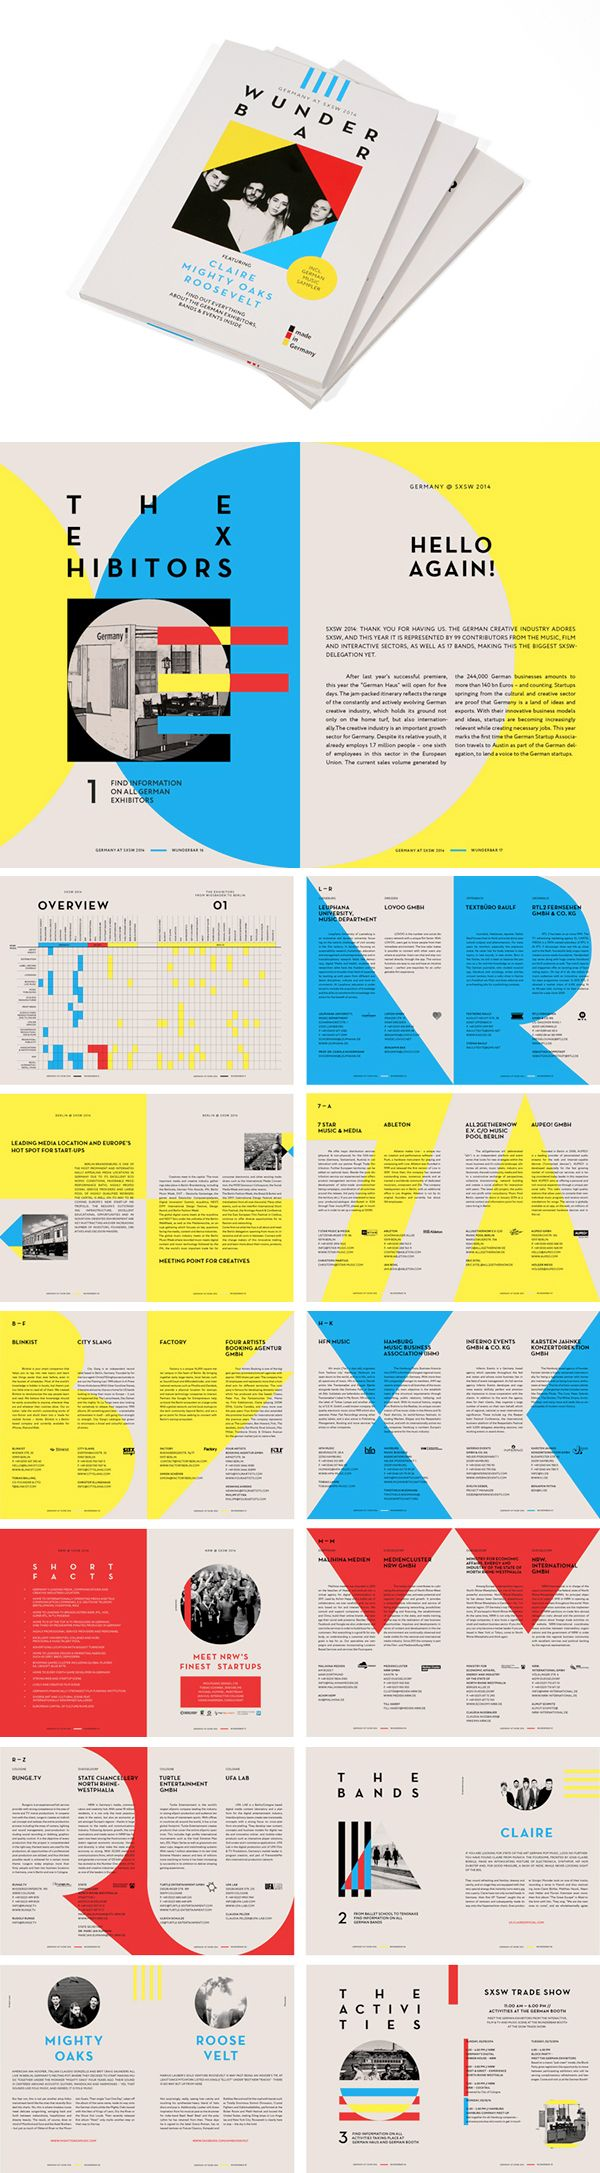 sxsw 2014 german haus booklet layoutbooklet designsxsw 2014brochure ideascatalog - Booklet Design Ideas